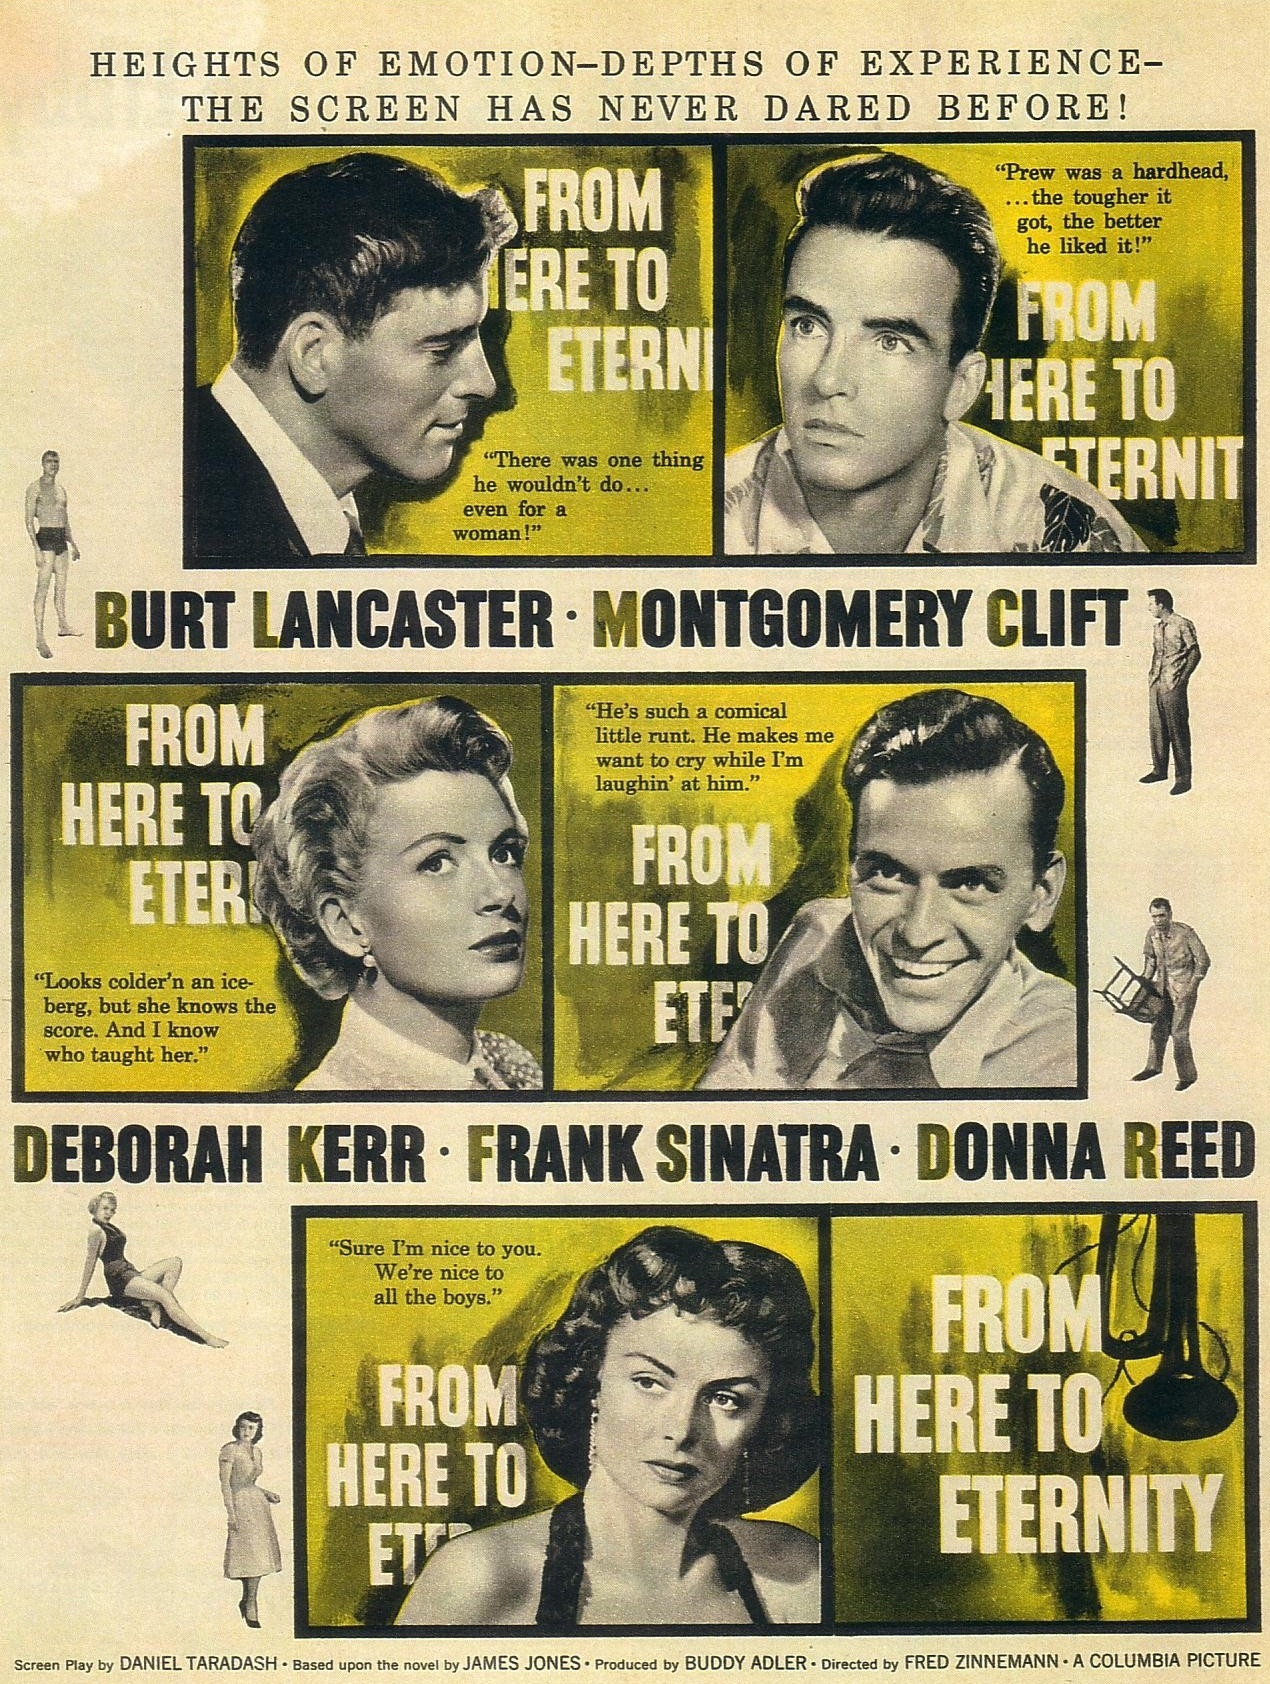 from-here-to-eternity-poster.jpg